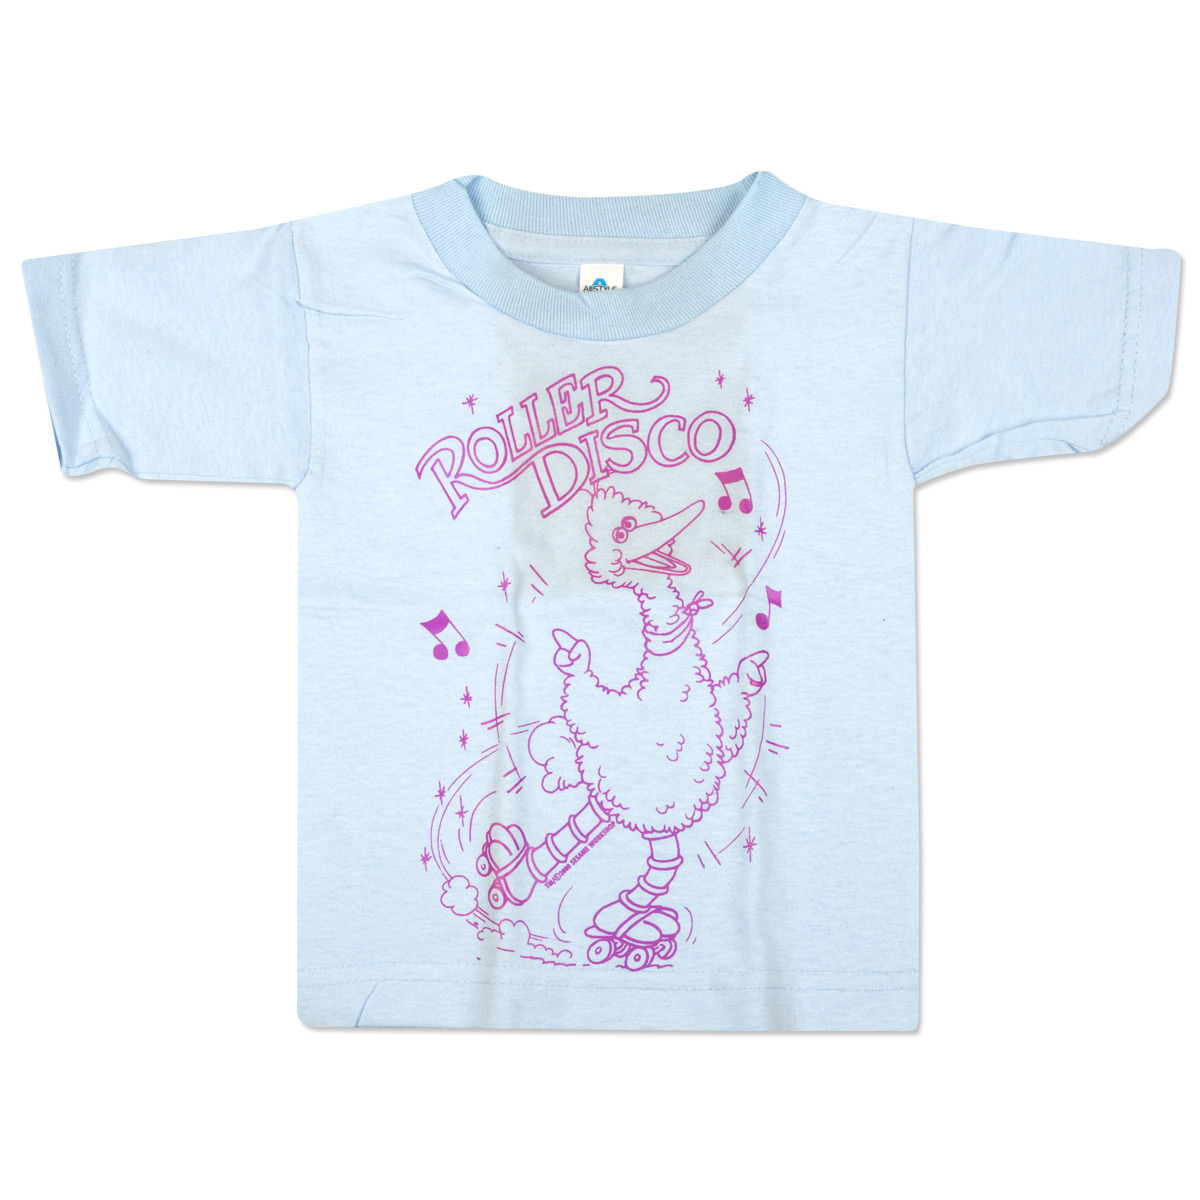 Big Bird Roller Disco Toddler T-Shirt